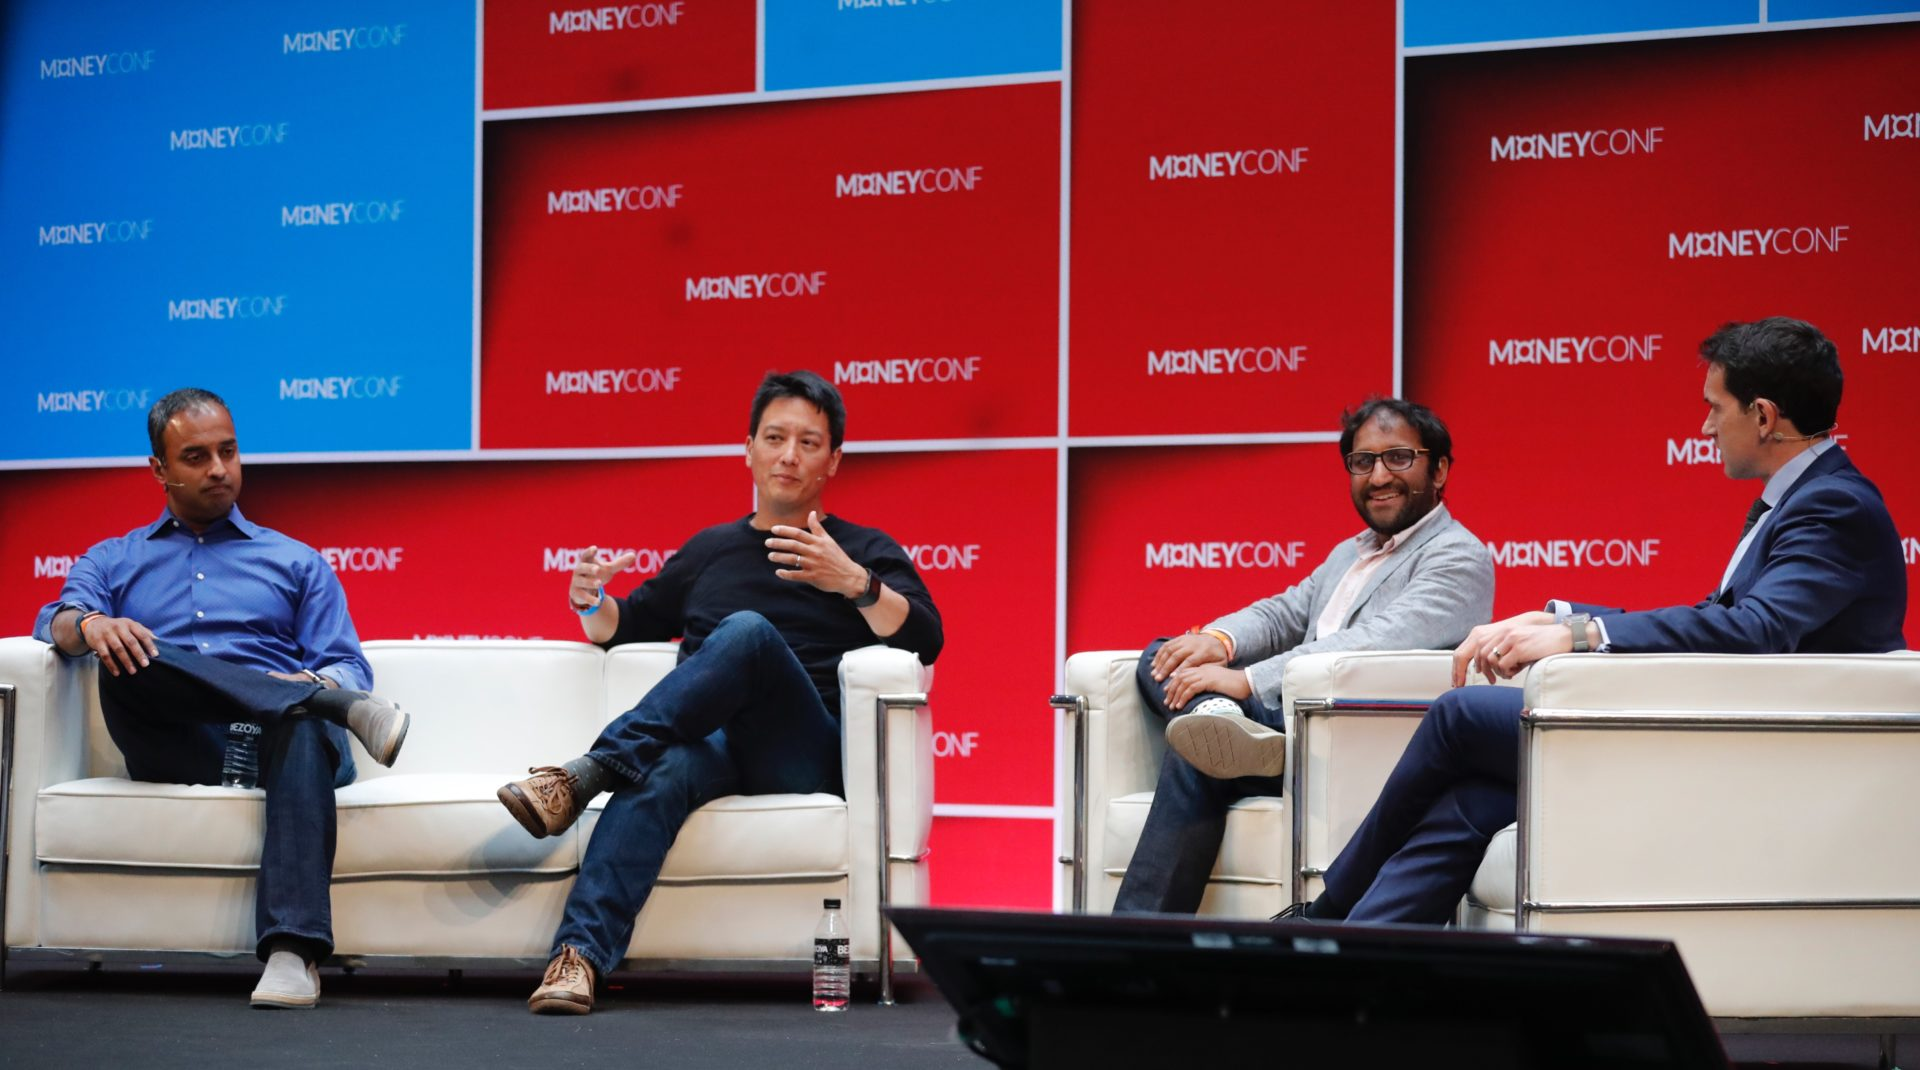 A panel moment about fintech in Europe. From left to right, Ravi Viswanathan, General Partner of NEA; Jay Reinemann of Propel; Sheel Mohnot, partner of 500 Startups and Francesco Guerrera, Dow Jones and the moderator of the debate.